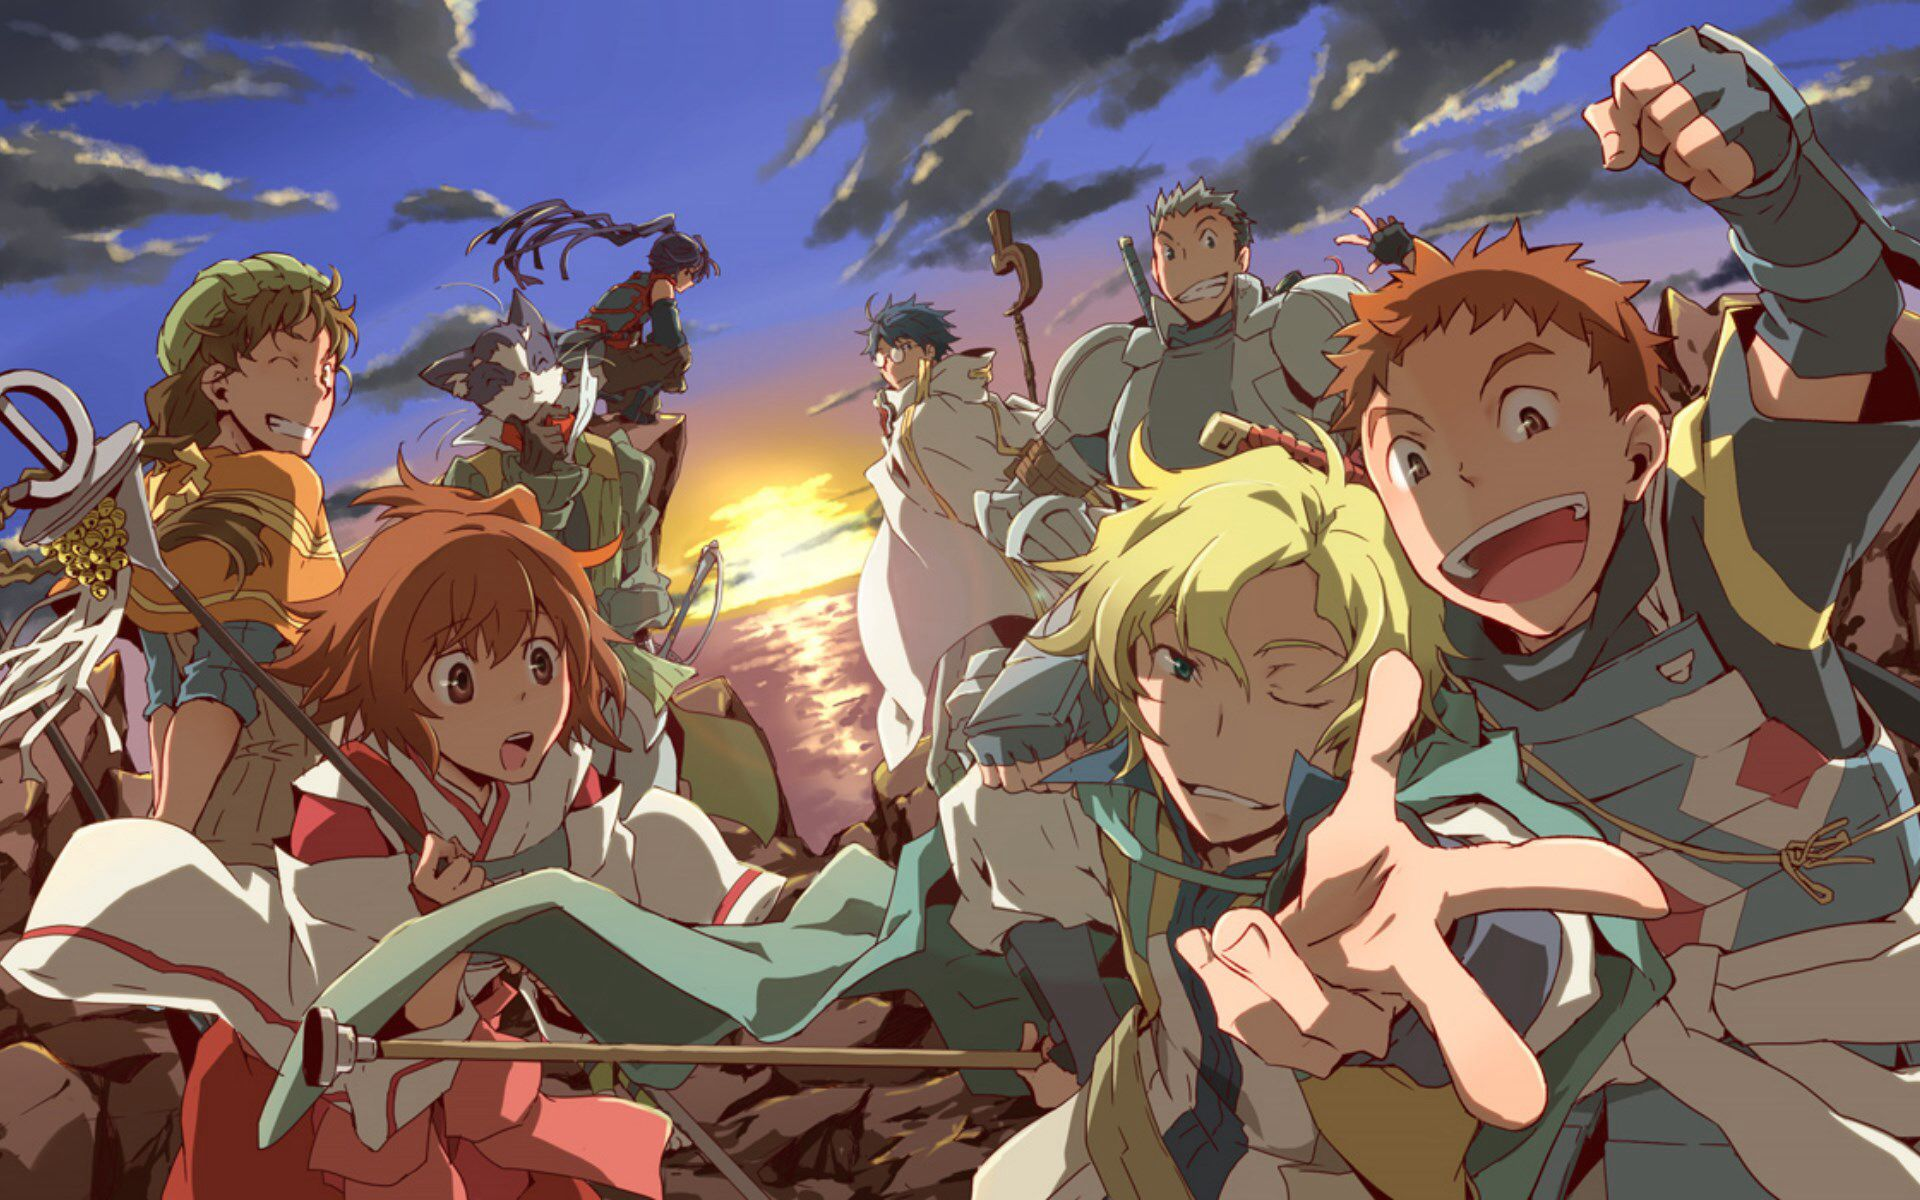 Image From Http Www Emptyblue It Data Wallpaper Loghorizon Log Horizon Nn0 Jpg Log Horizon Log Horizon Akatsuki Log Horizon Season 2 Anime wallpaper anime network